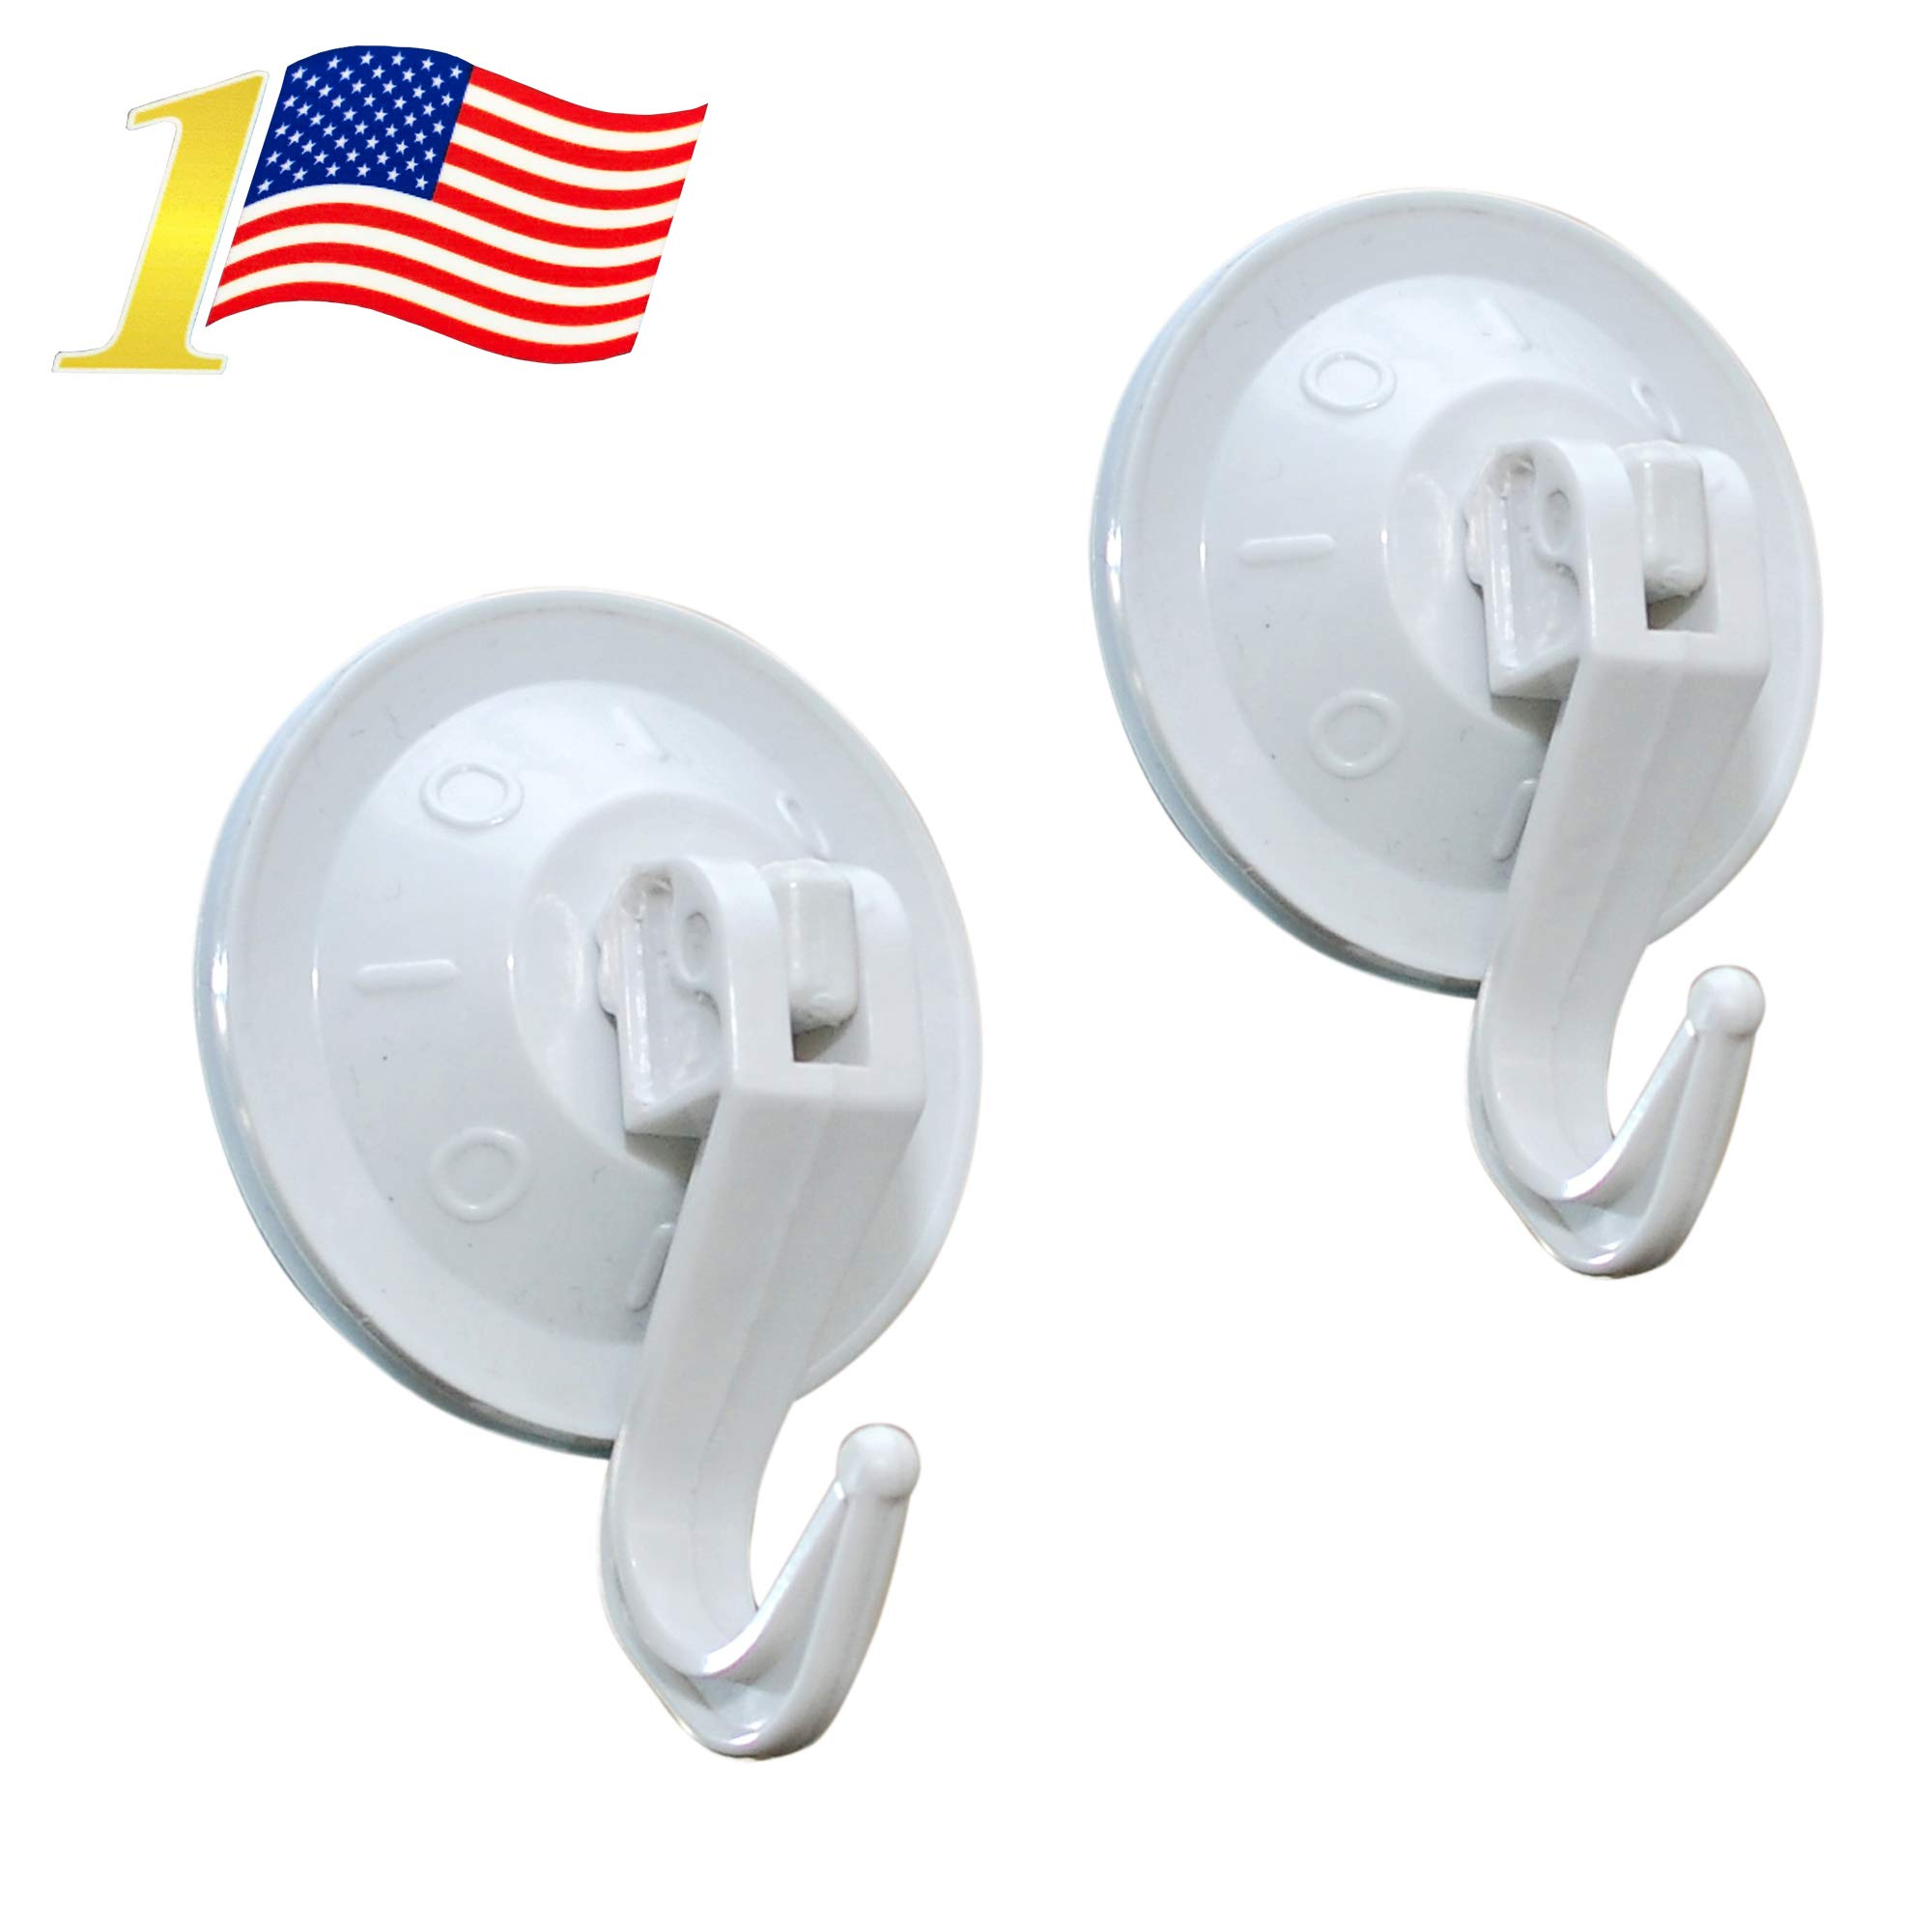 Super Powerful Vacuum Suction Hooks - Damage Free (No Drilling, No Screws, No Holes, No Glue) - Perfect for Hanging Your Bags, Cloths, Towels, Kitchen Tools, Bathroom Accessories (2-PACK) by HIMI Store